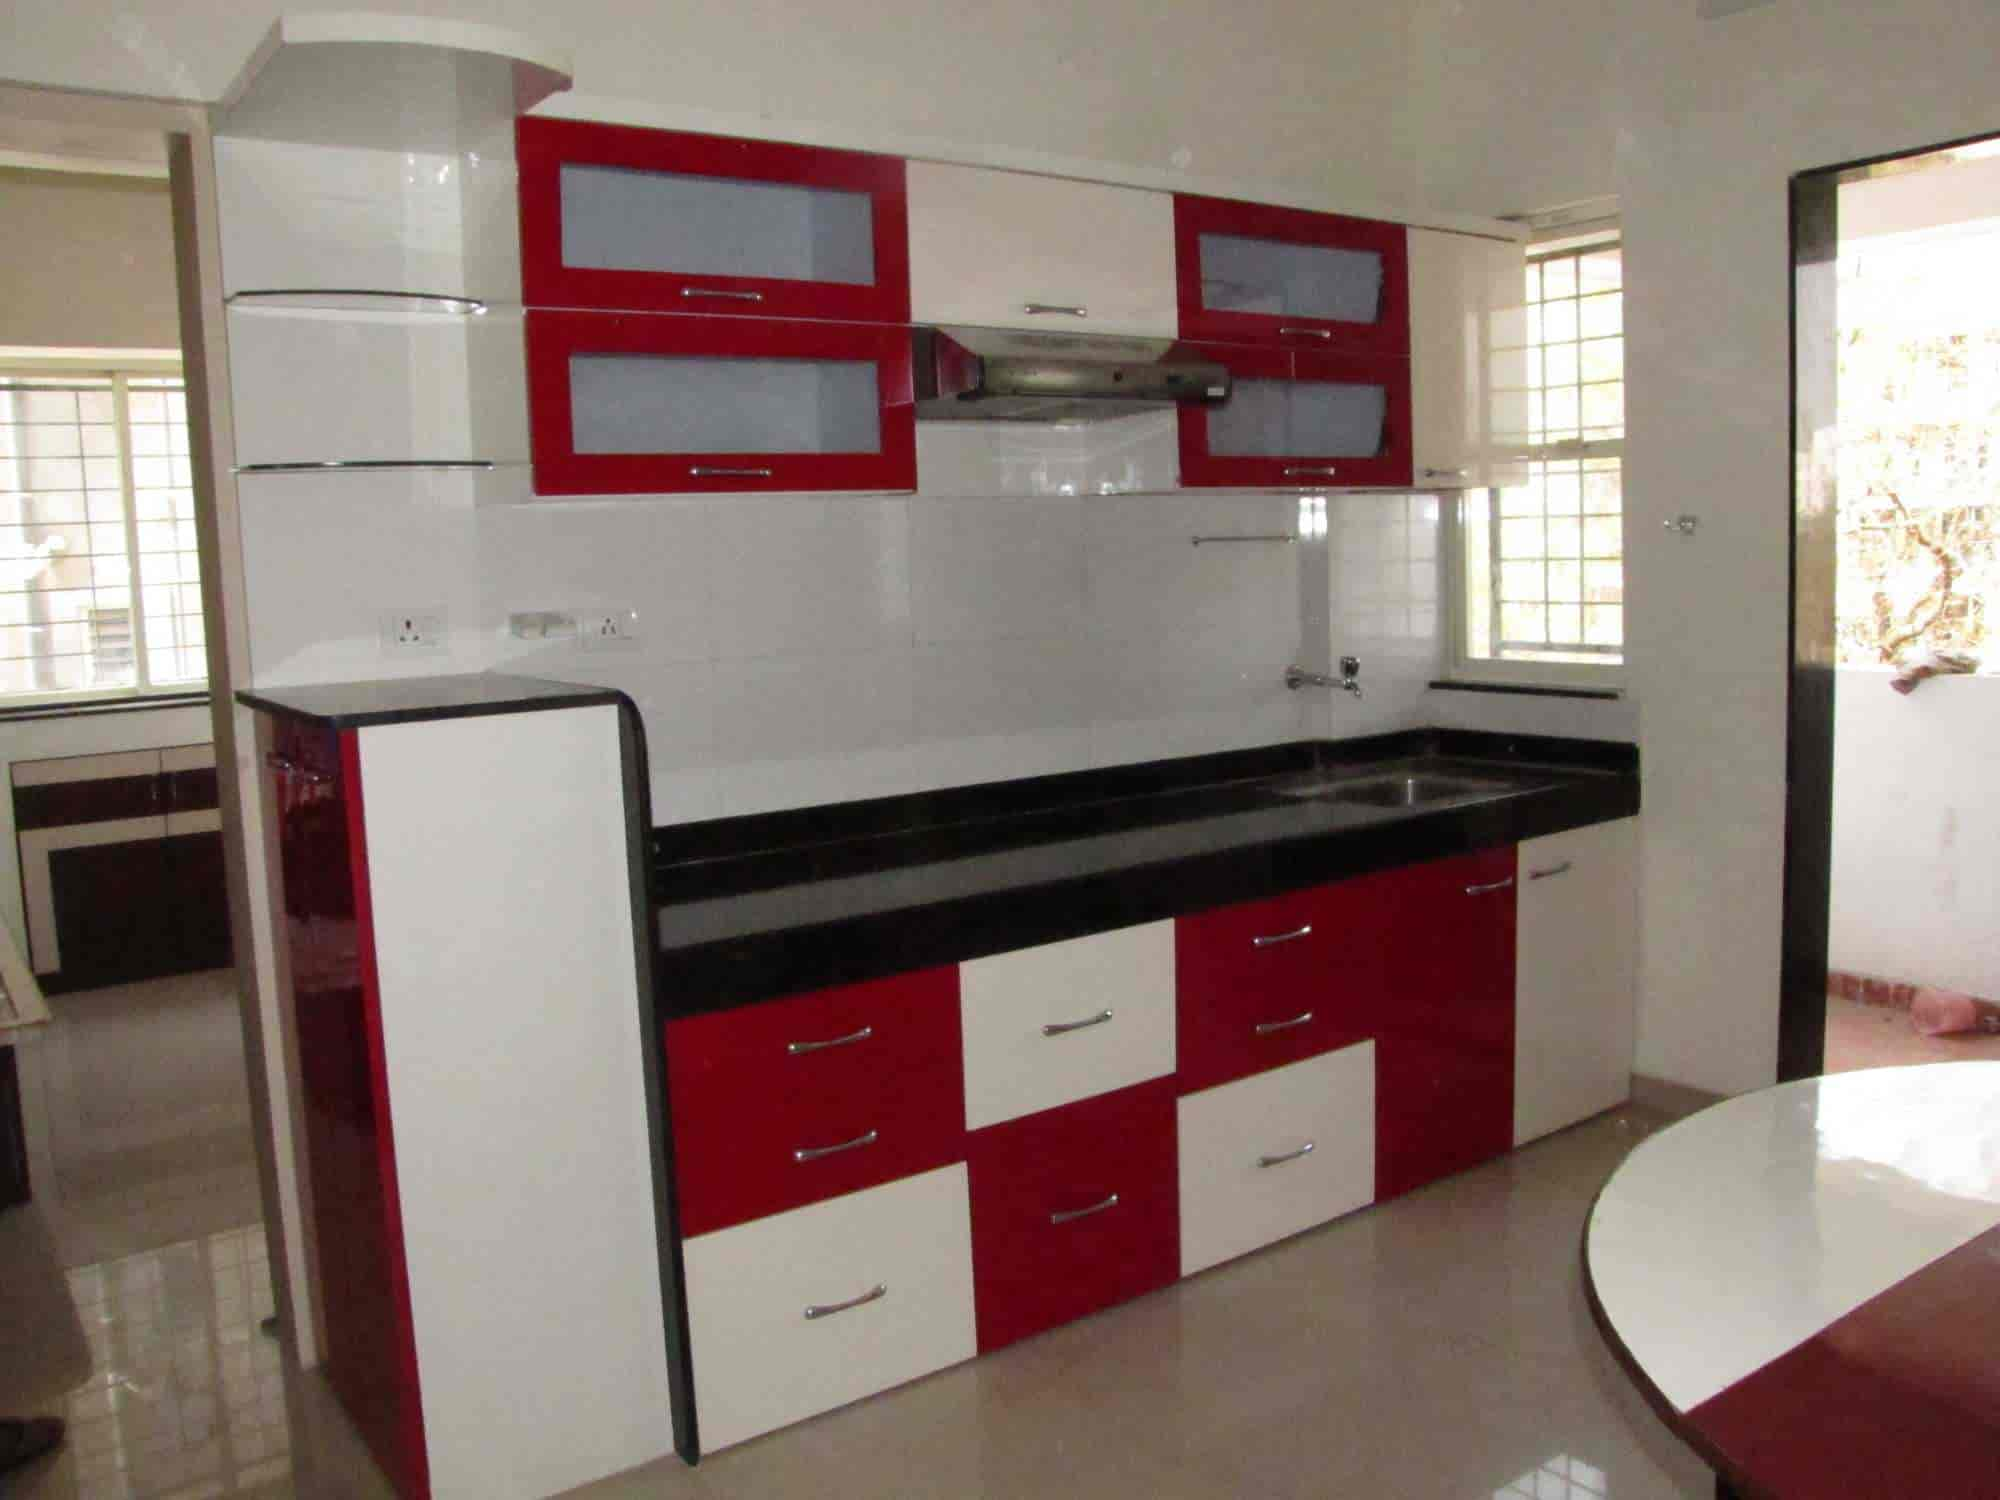 ... Modular Kitchen View   Mona Furniture And Kitchen Trolley Photos,  Warje, Pune   Furniture ...